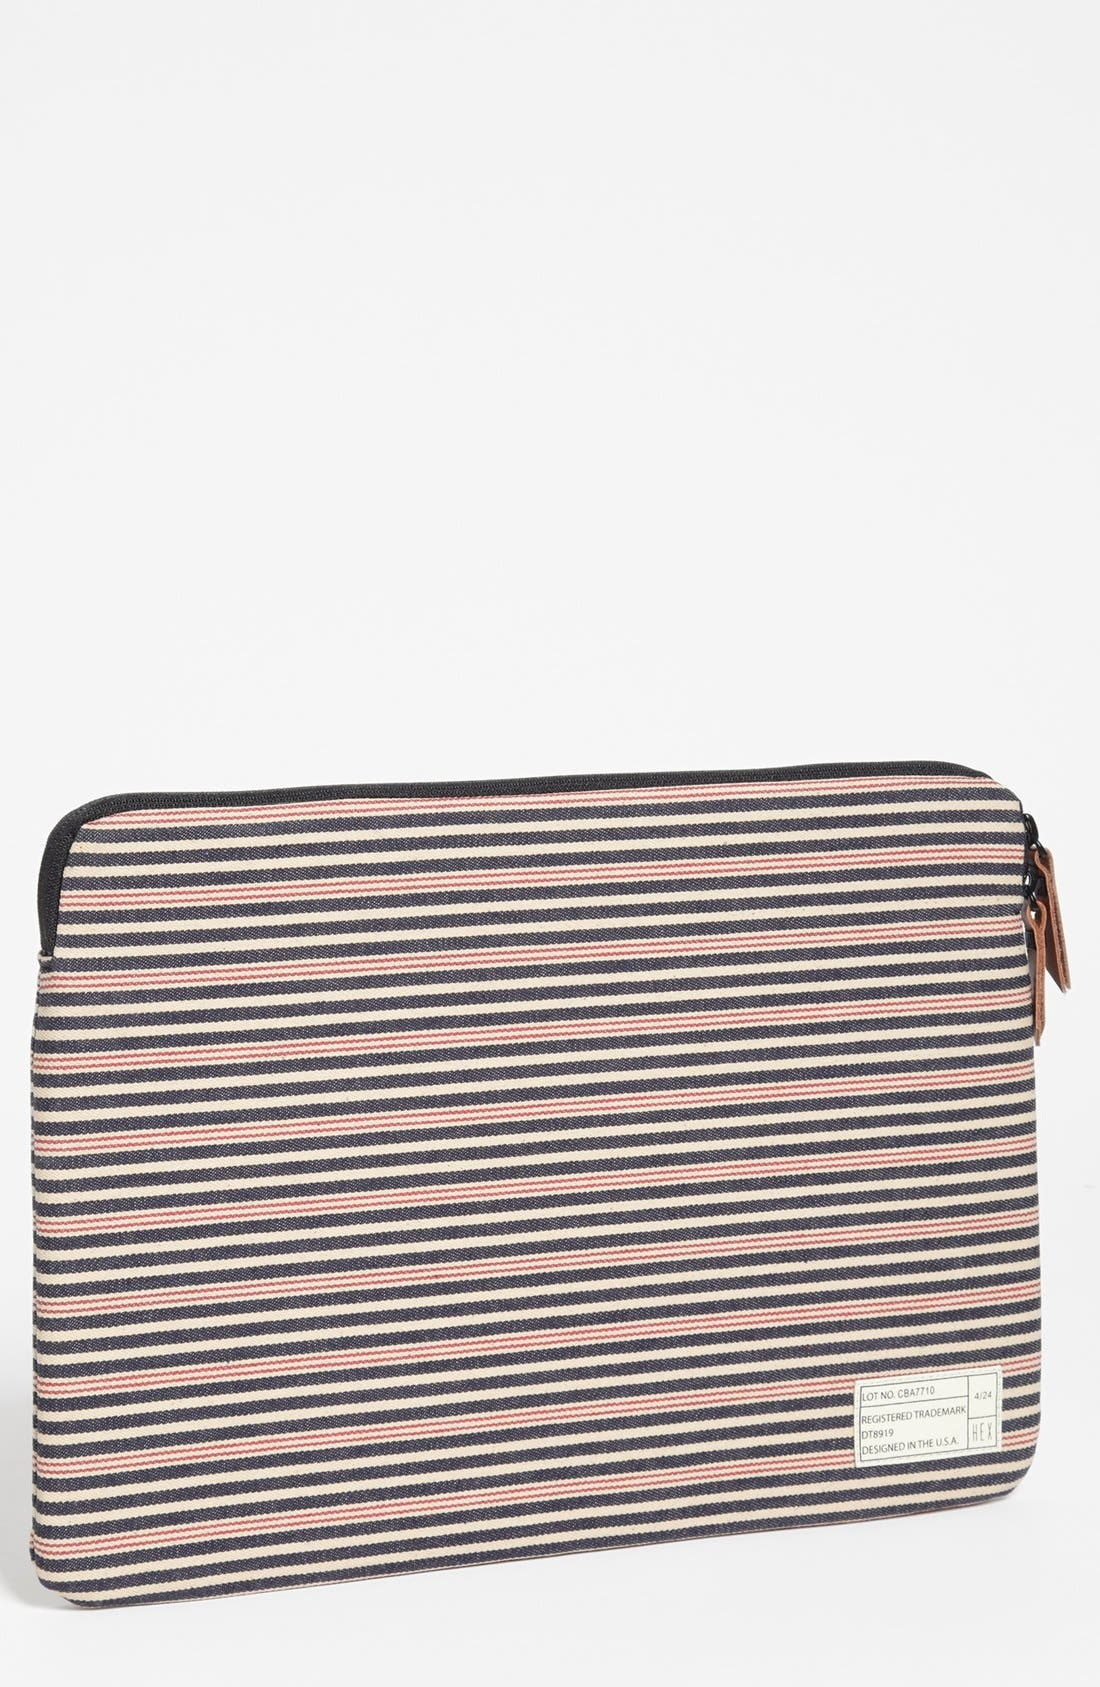 Alternate Image 1 Selected - HEX 'Cabana' MacBook Air Sleeve (13 Inch)